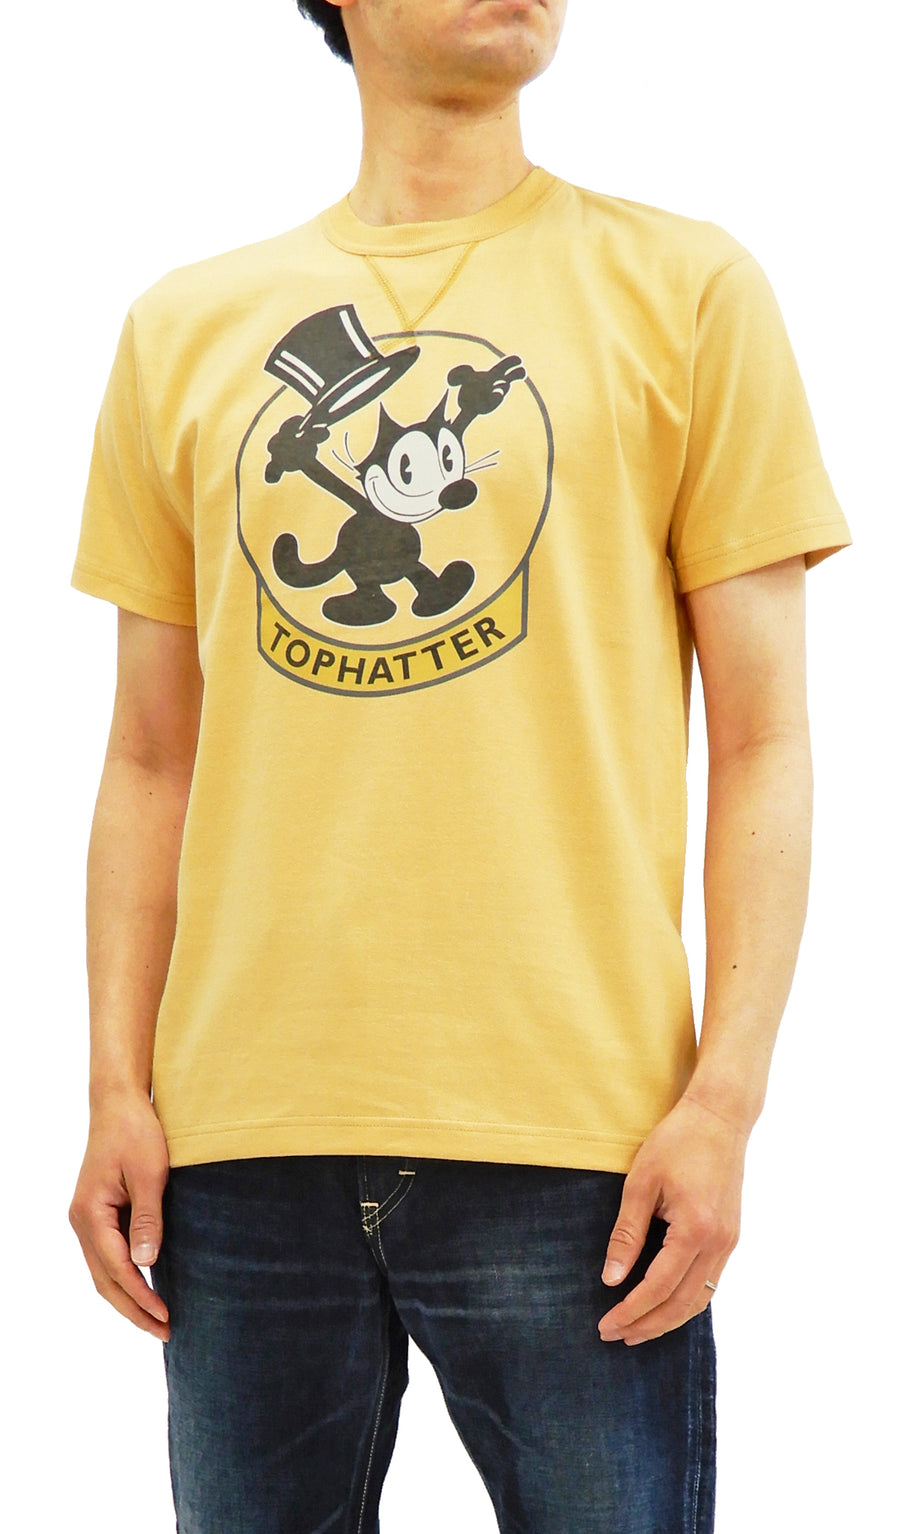 TOYS McCOY T-Shirt Felix the Cat Men's Short Sleeve Tee TMC1838 Yellow